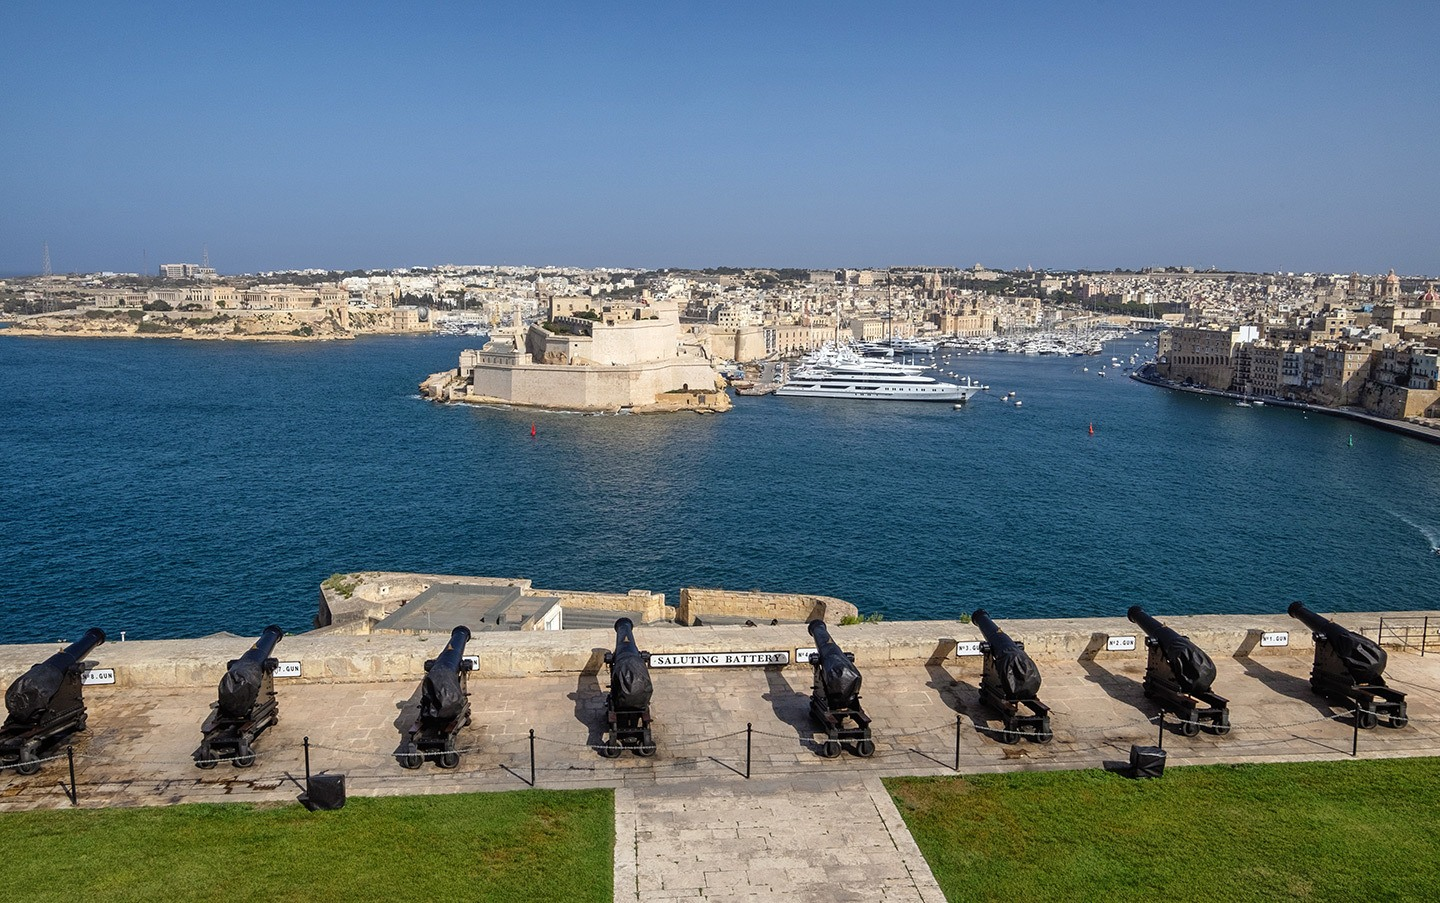 The Saluting Battery in the Upper Barrakka Gardens, Valletta, Malta